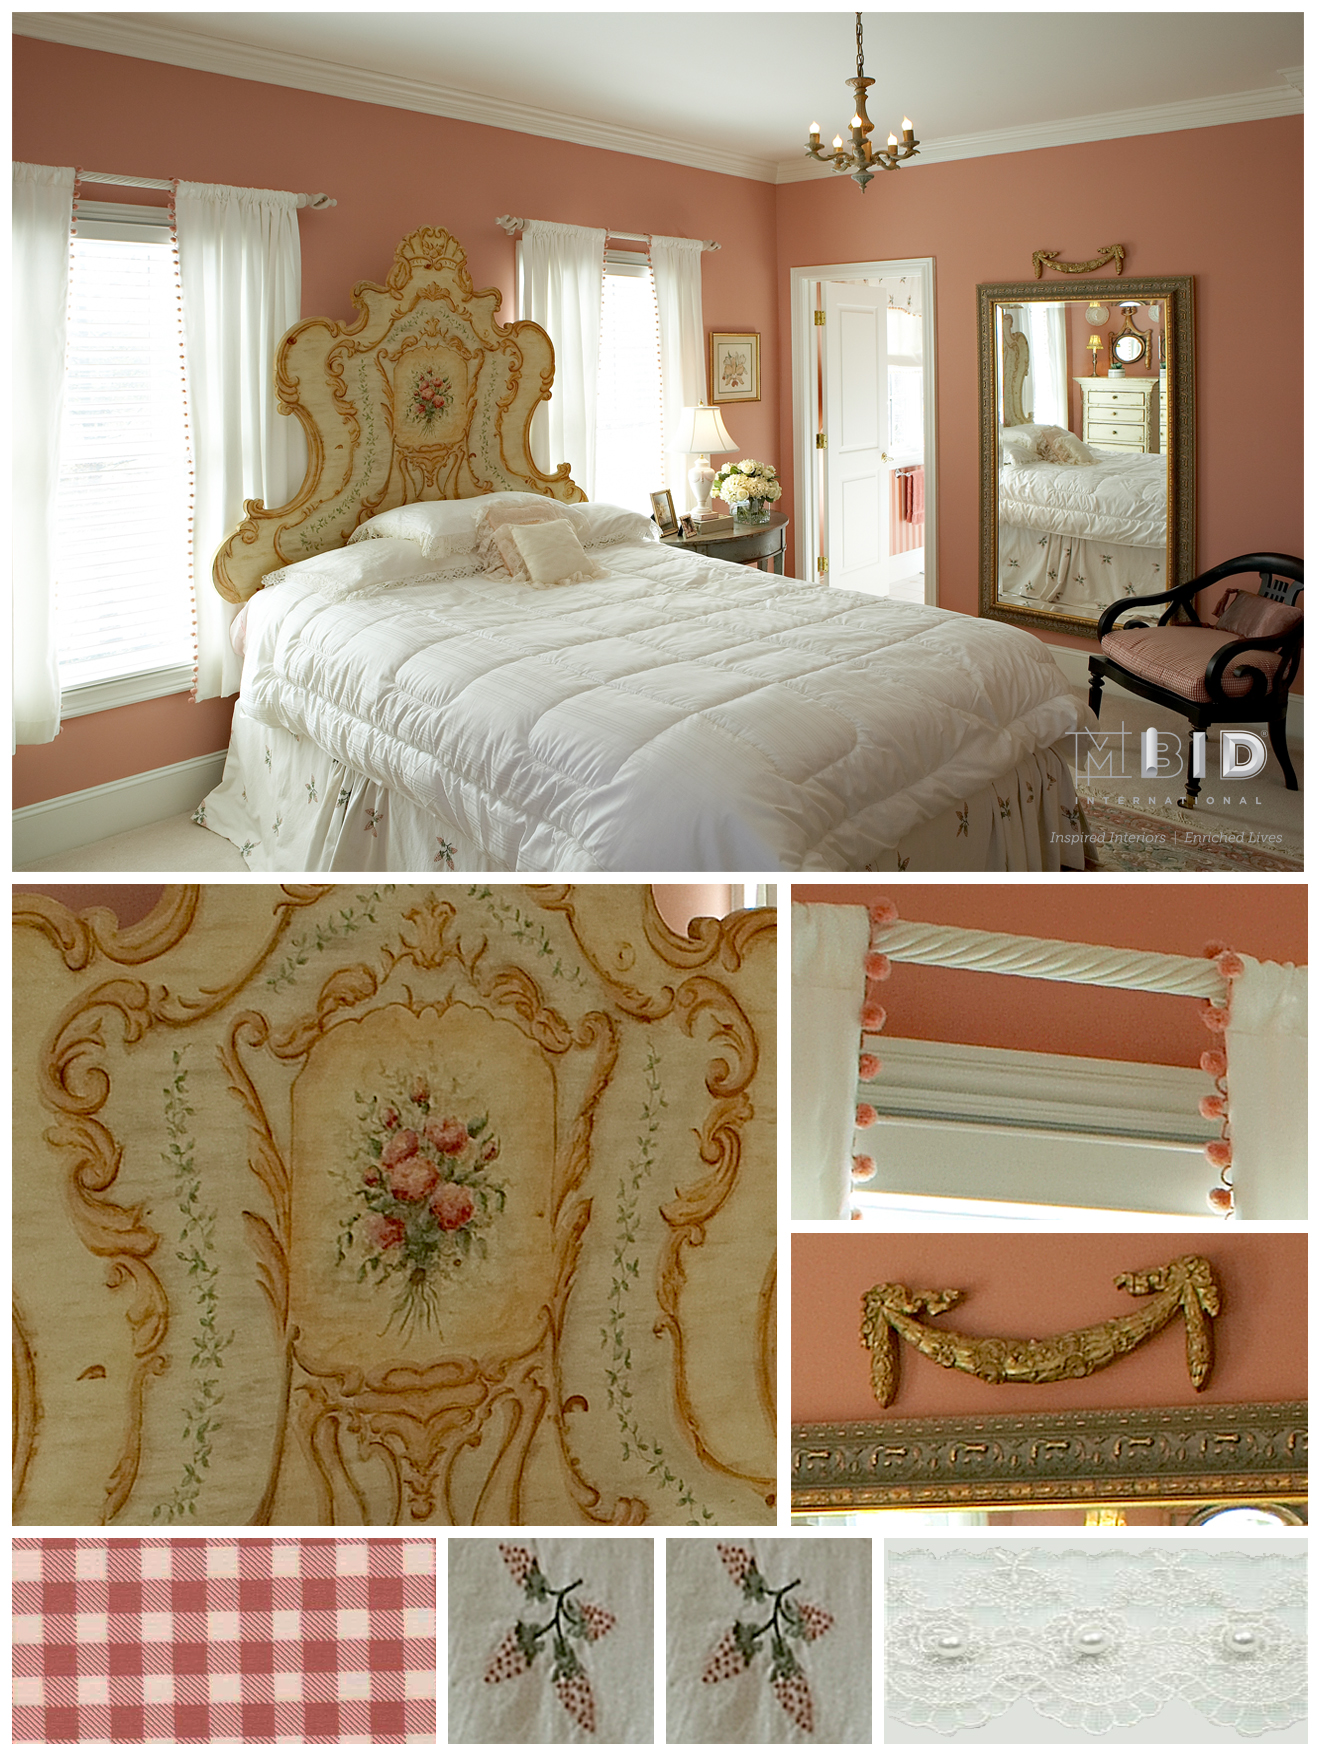 Rose Princess Girls Room Interior Design Greensboro NC